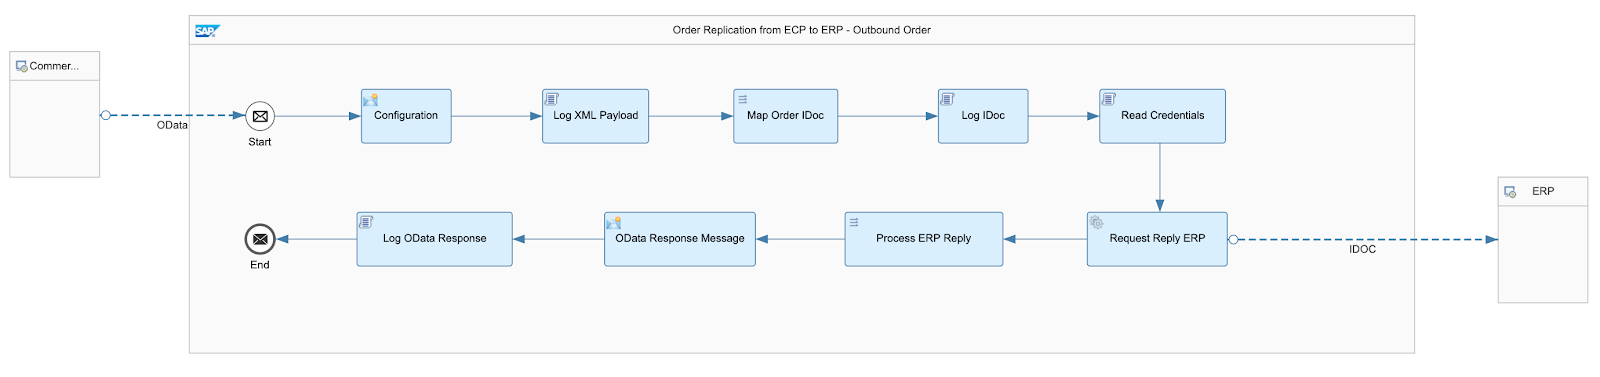 Connecting the Dots with SAP Cloud Platform Integration